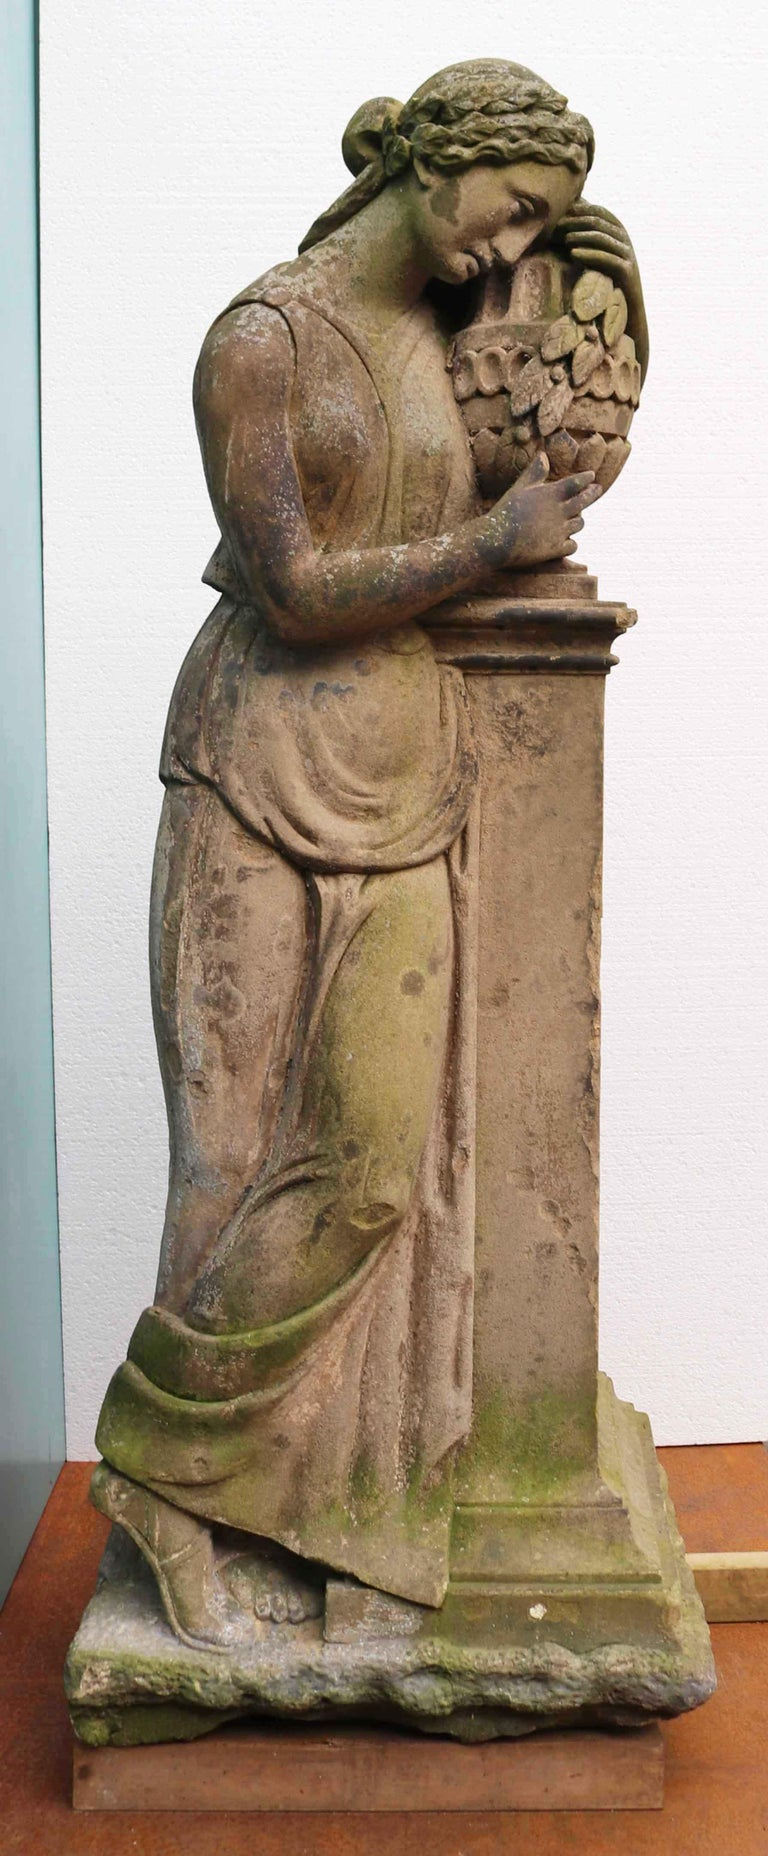 About  An impressive life-size hand carved natural stone statue of a woman in Classical Greek or Roman dress, grasping a vase.  Condition report  Good structural condition. No breaks or repairs. Weathered finish. Traces of old